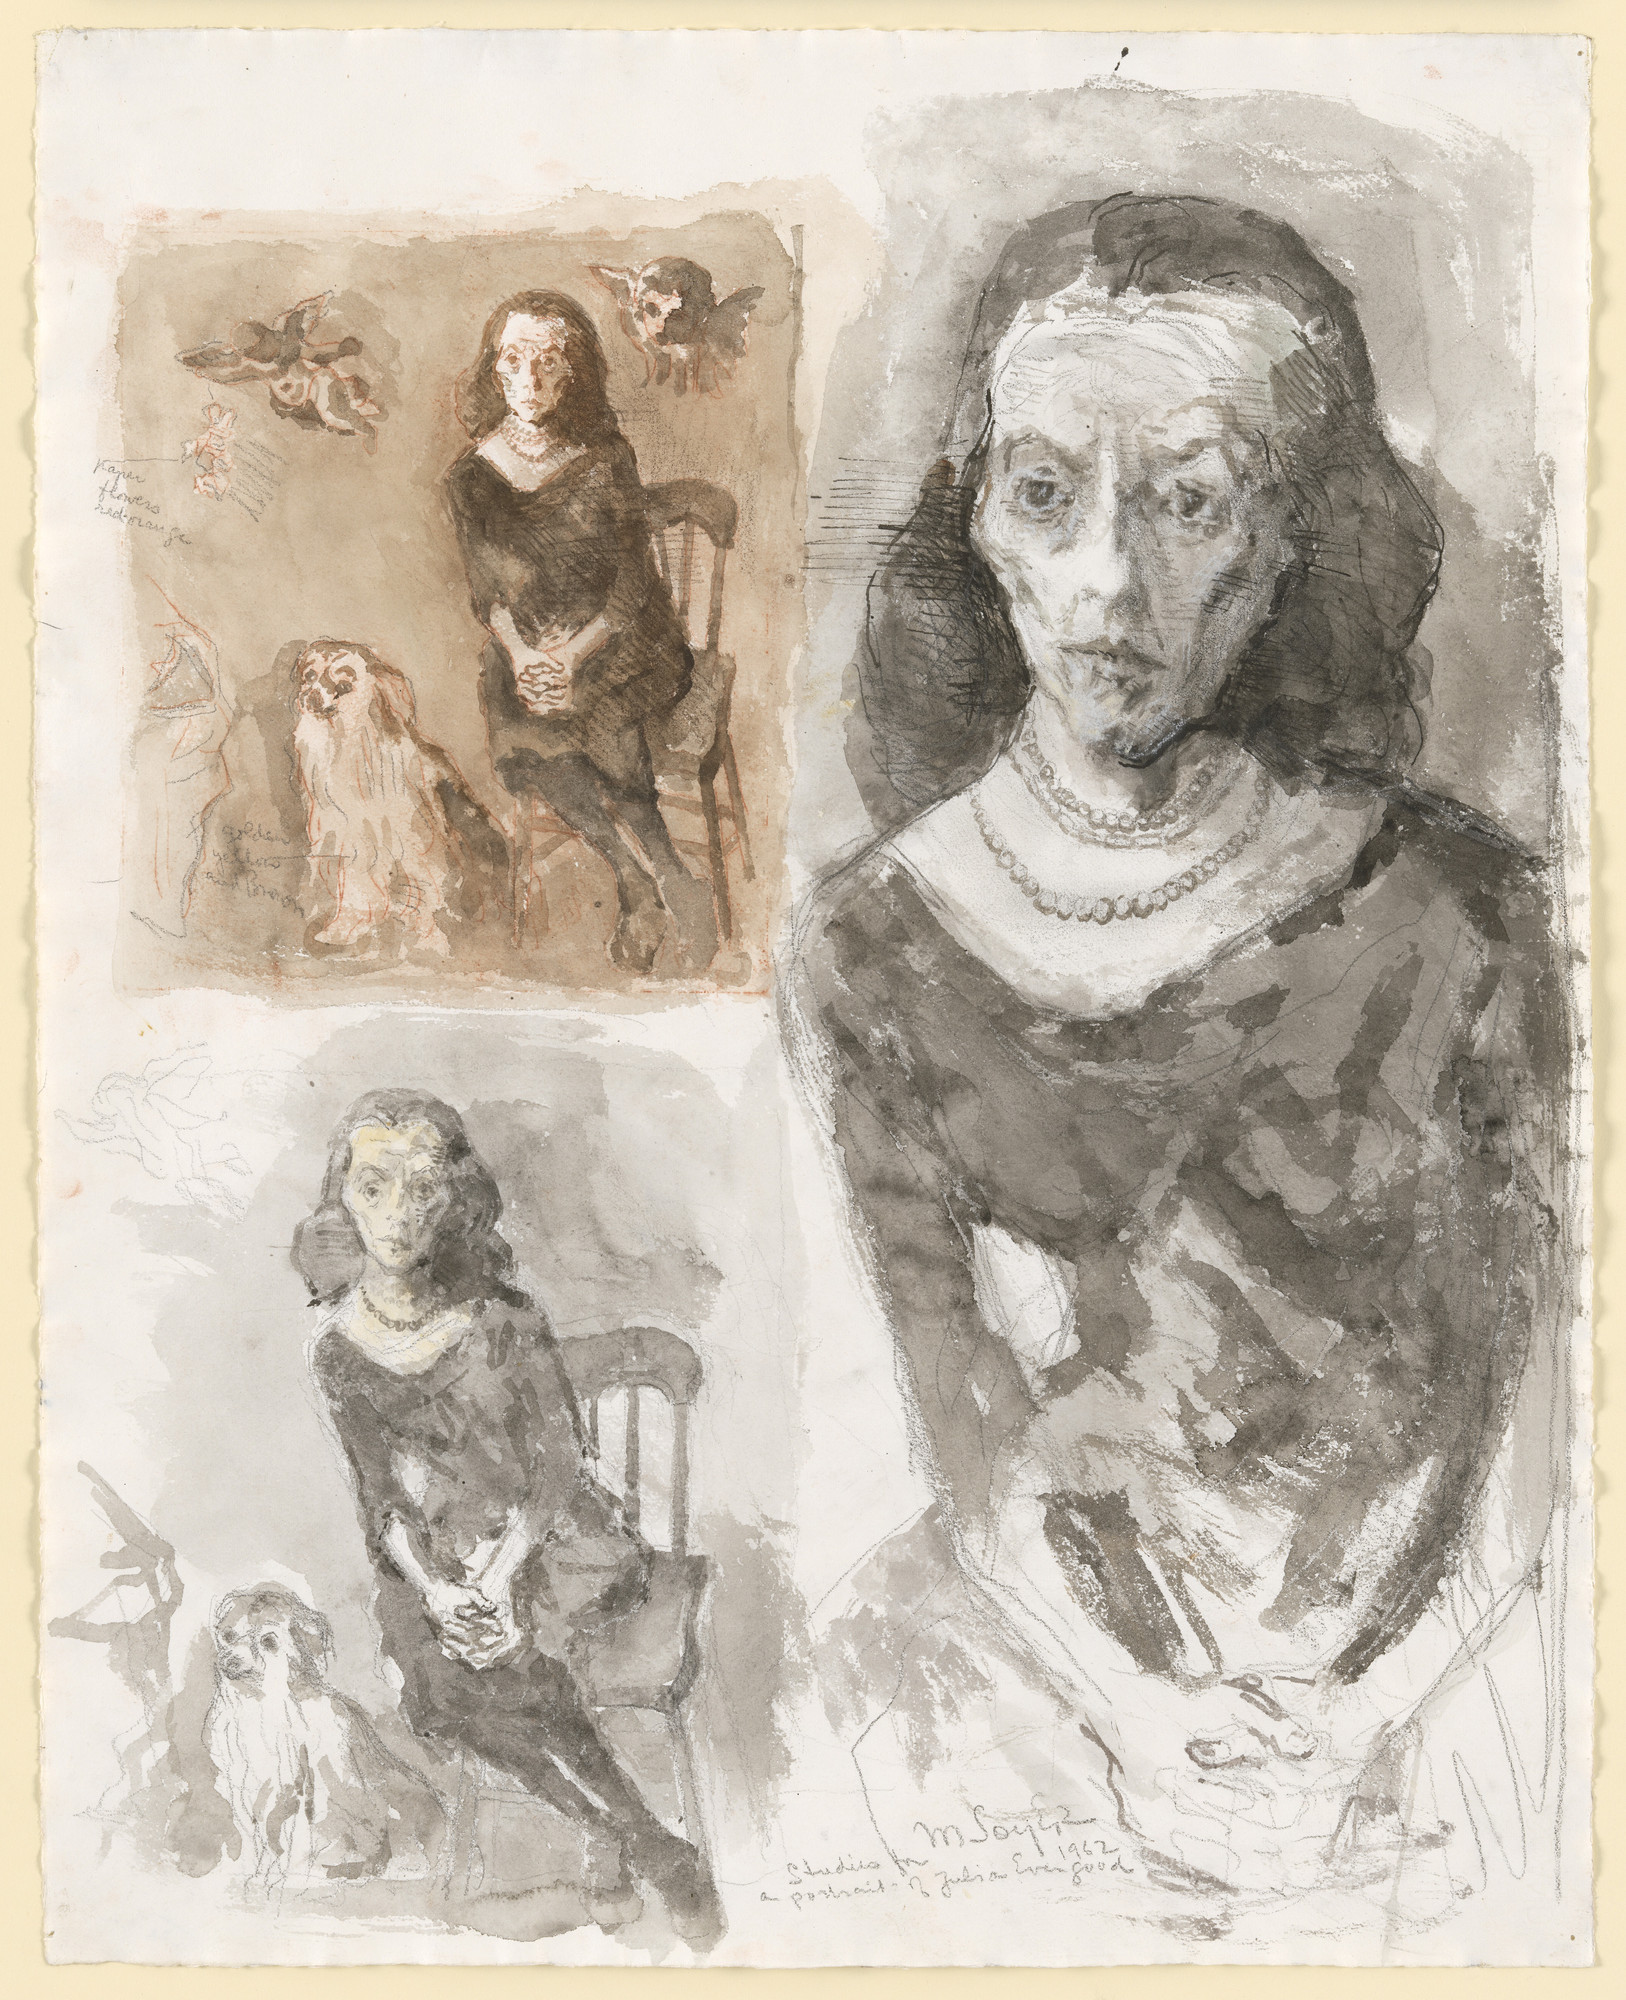 Moses Soyer. Studies for Julia Evergood. 1962